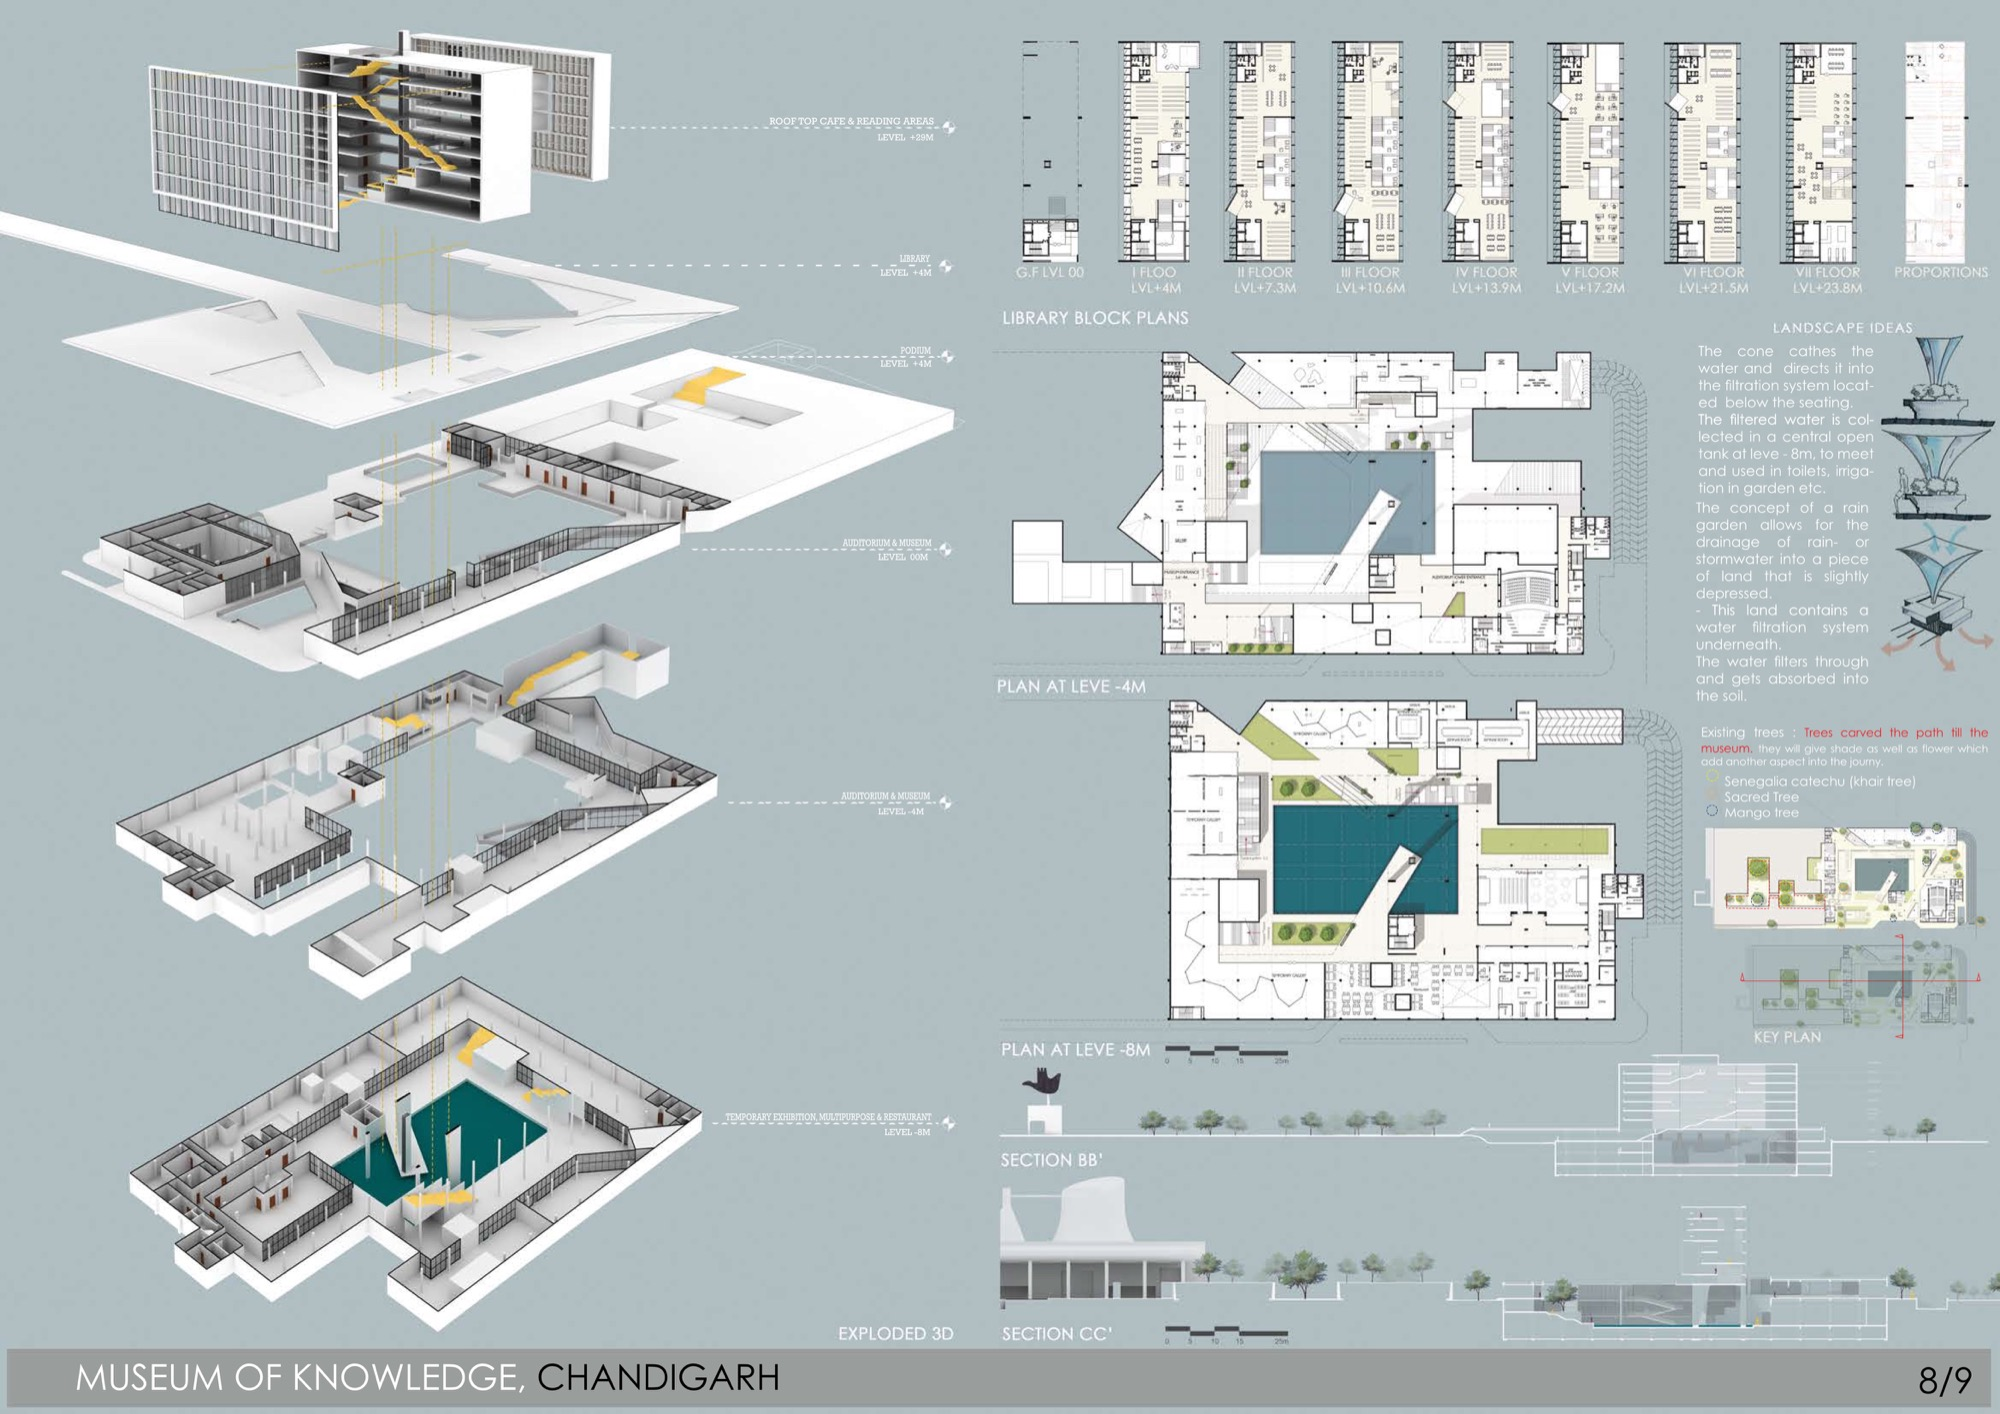 B.Arch Thesis: Museum of Knowledge, Chandigarh, by Nikhil Pawar 24